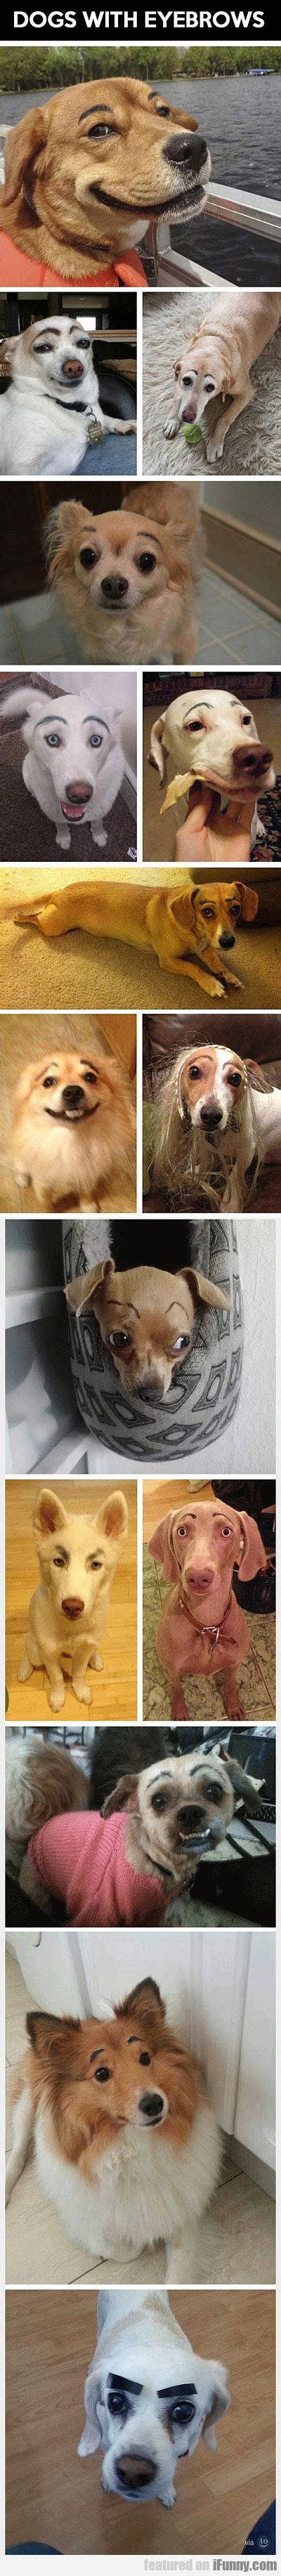 dogs with eyebrows dogs with eyebrows ifunny